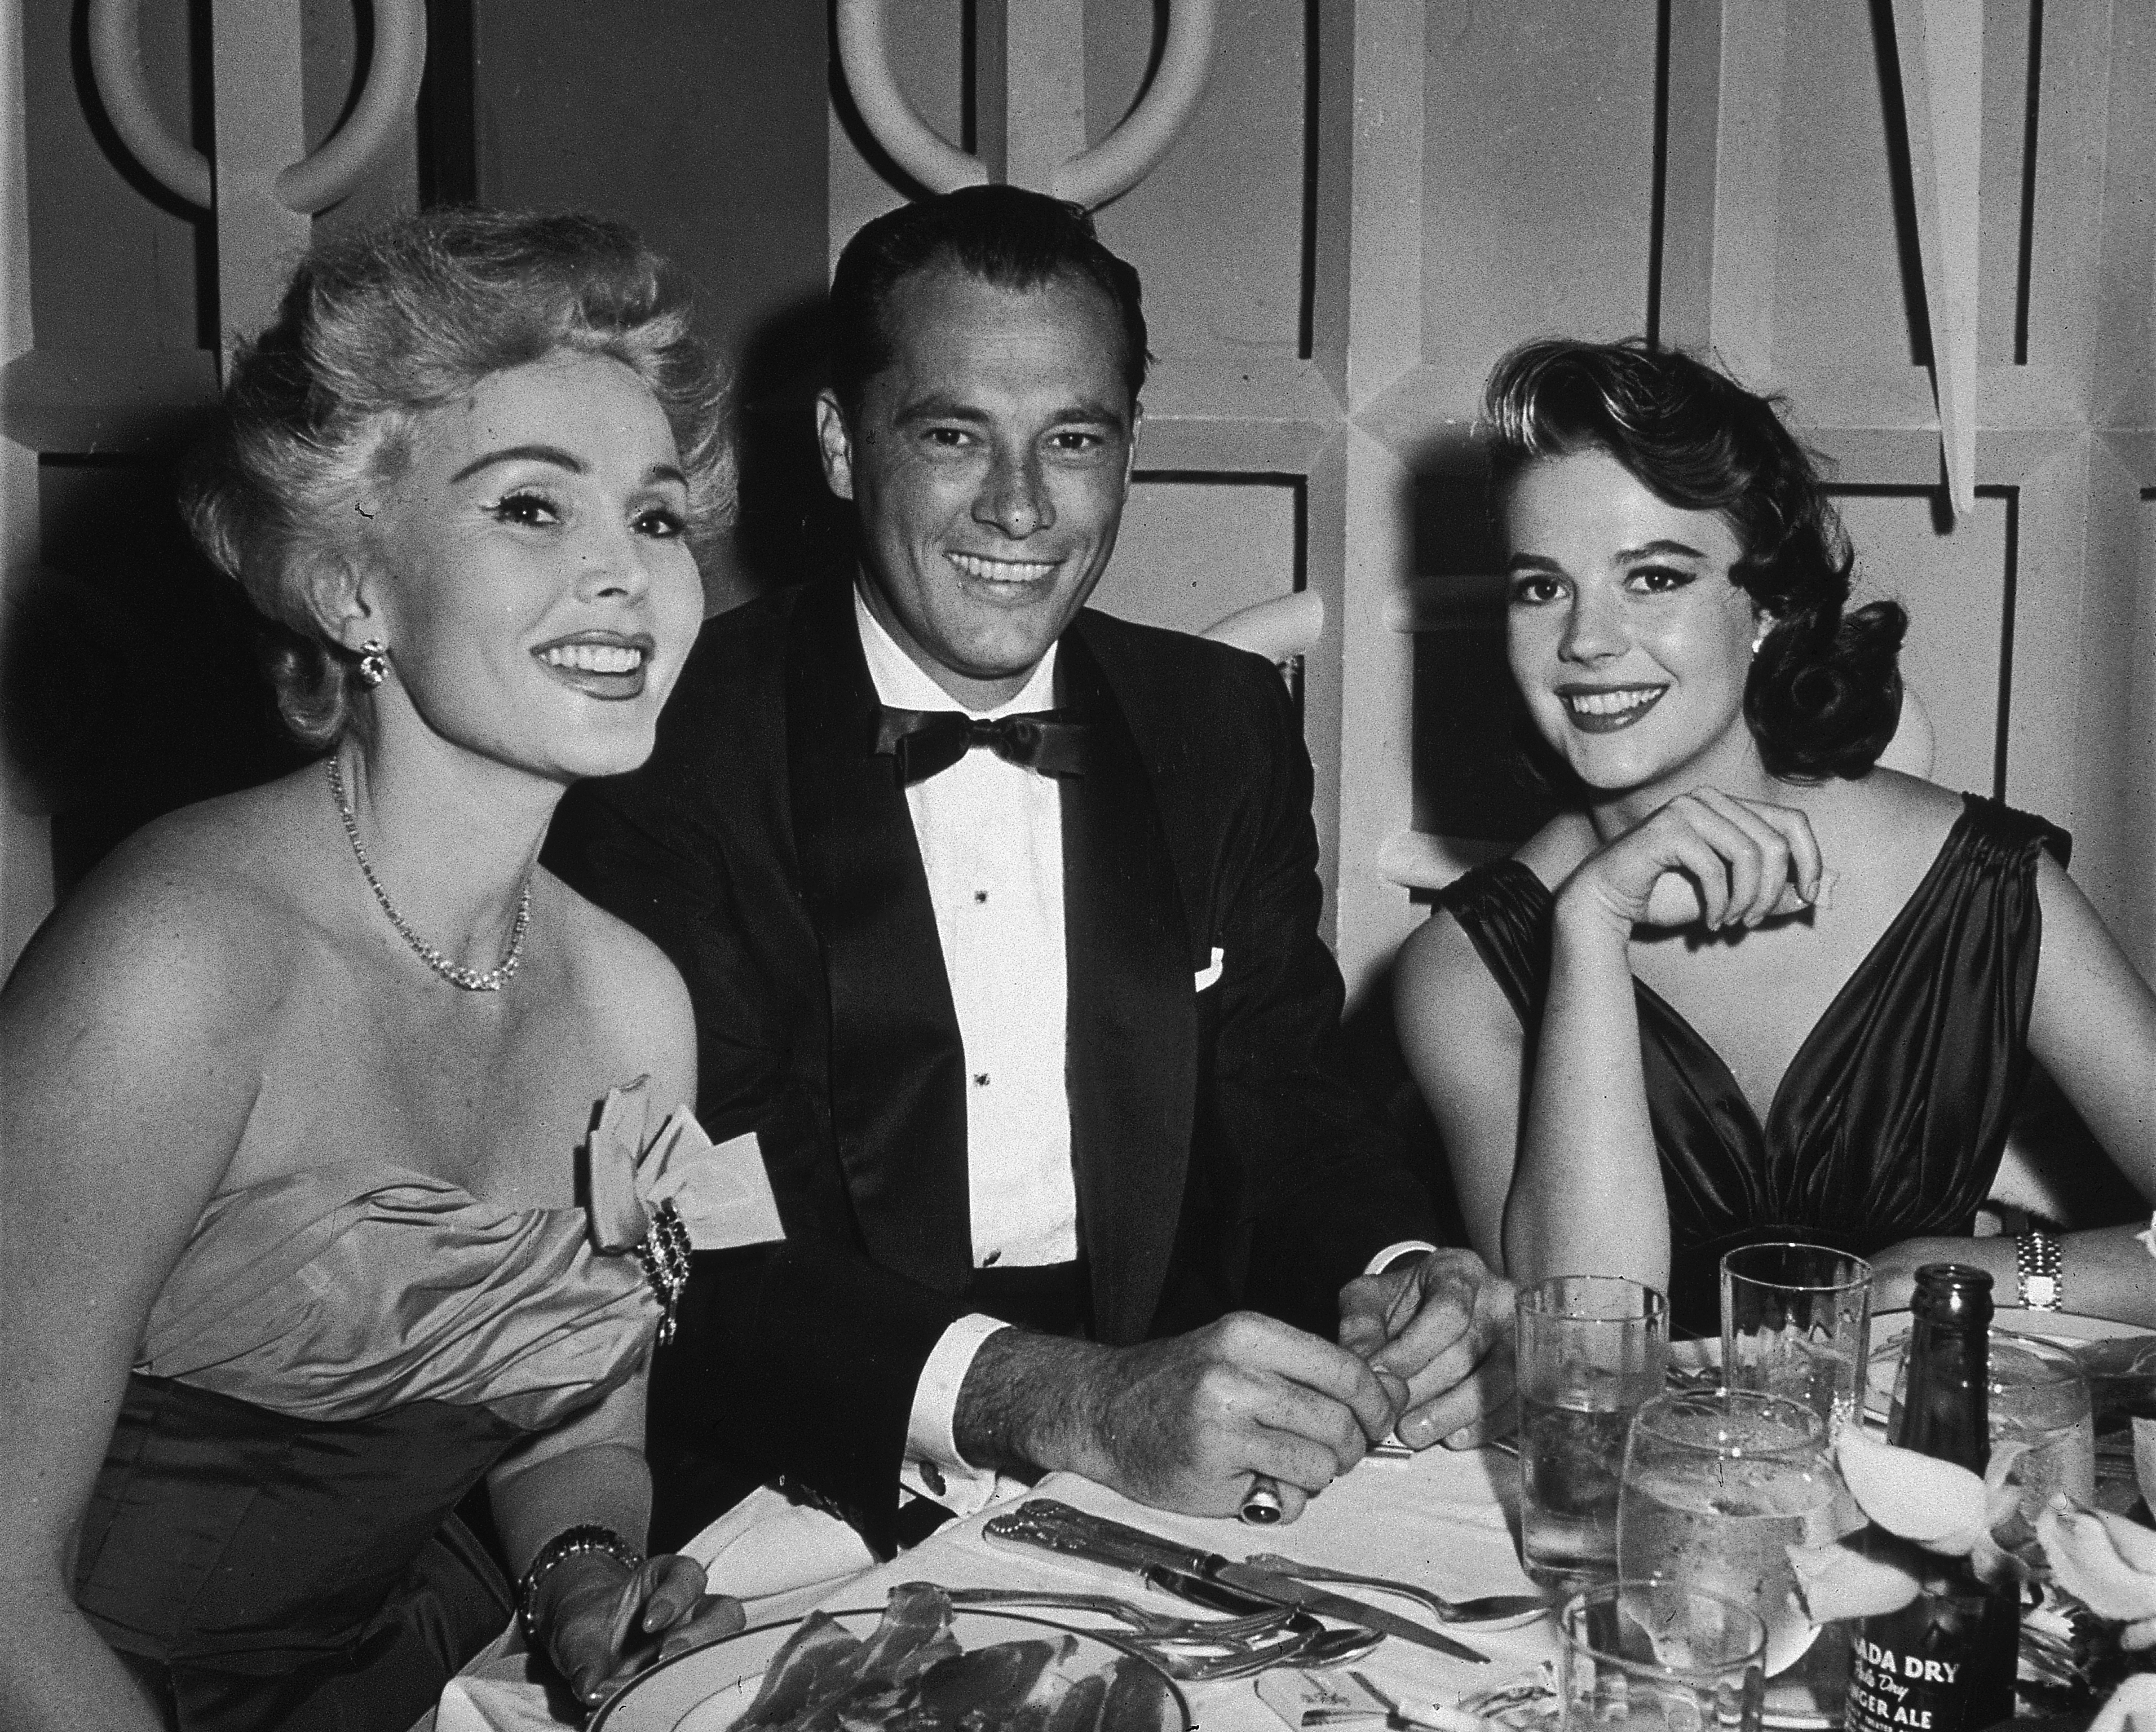 Zsa Zsa Gabor Quotes In Pictures Zsa Zsa Gabor's Most Glamorous Restaurant Photos  Eater